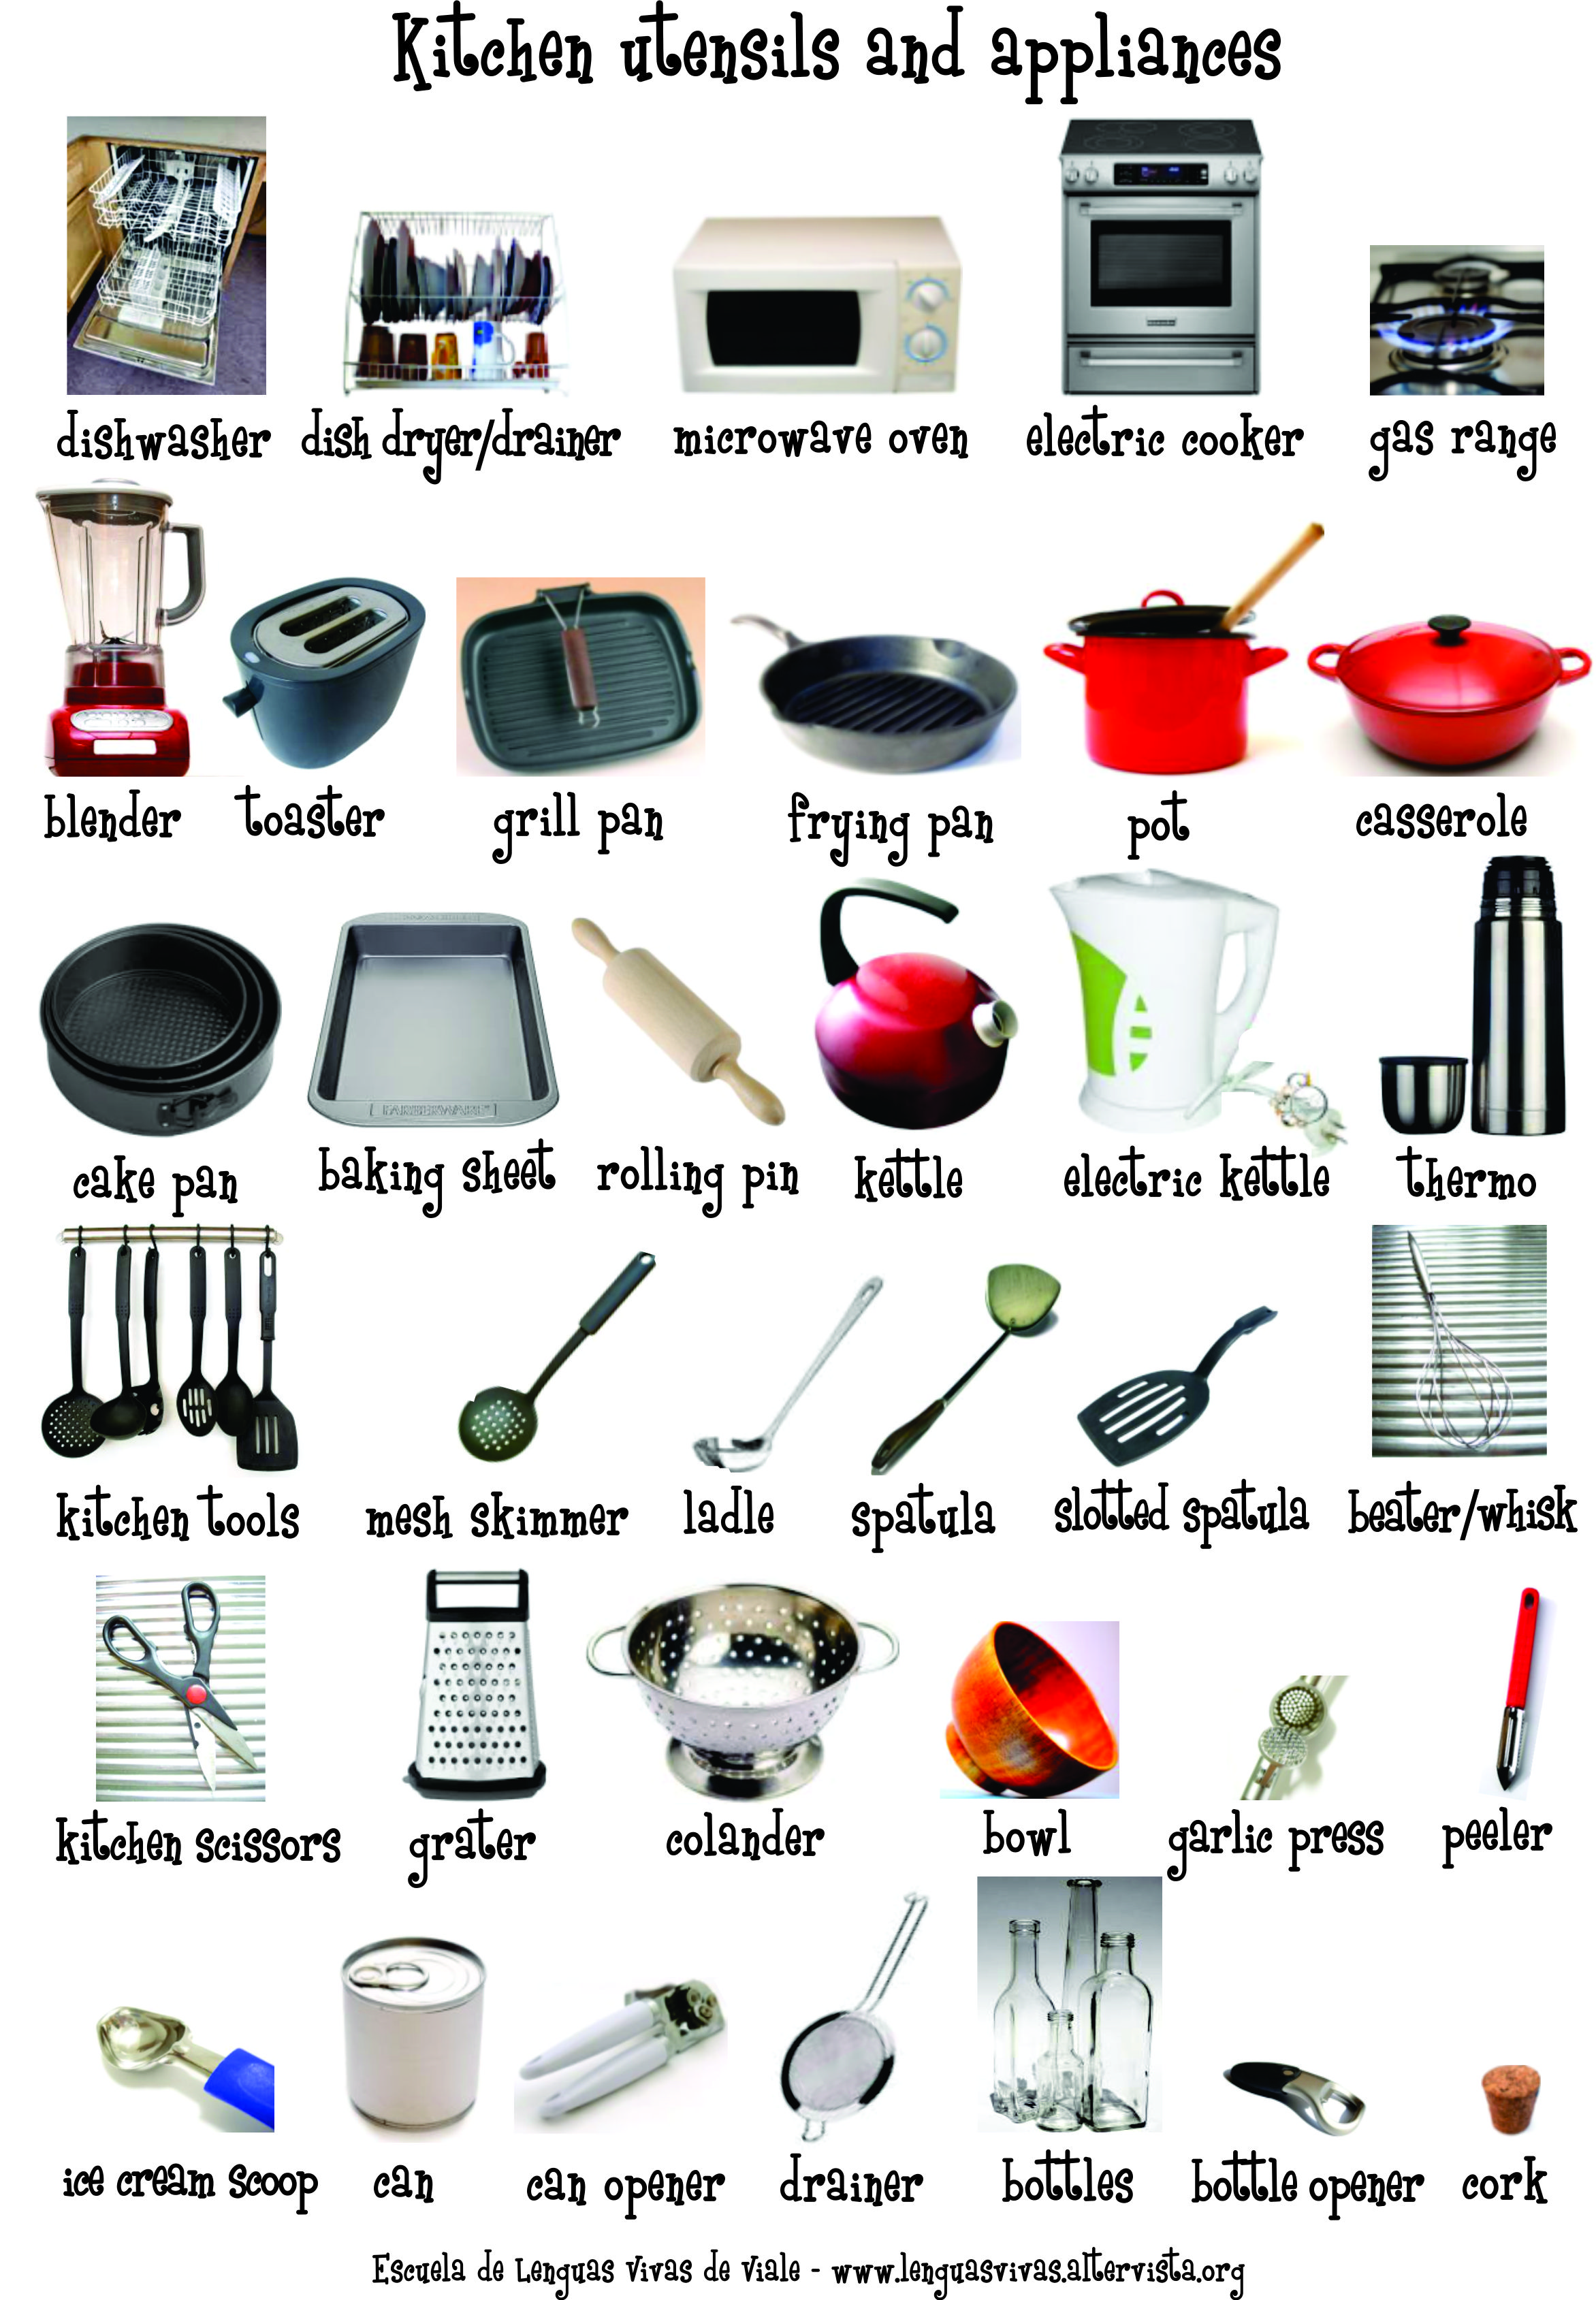 Learning English | Pinterest | Kitchen utensils, Utensils and Kitchens